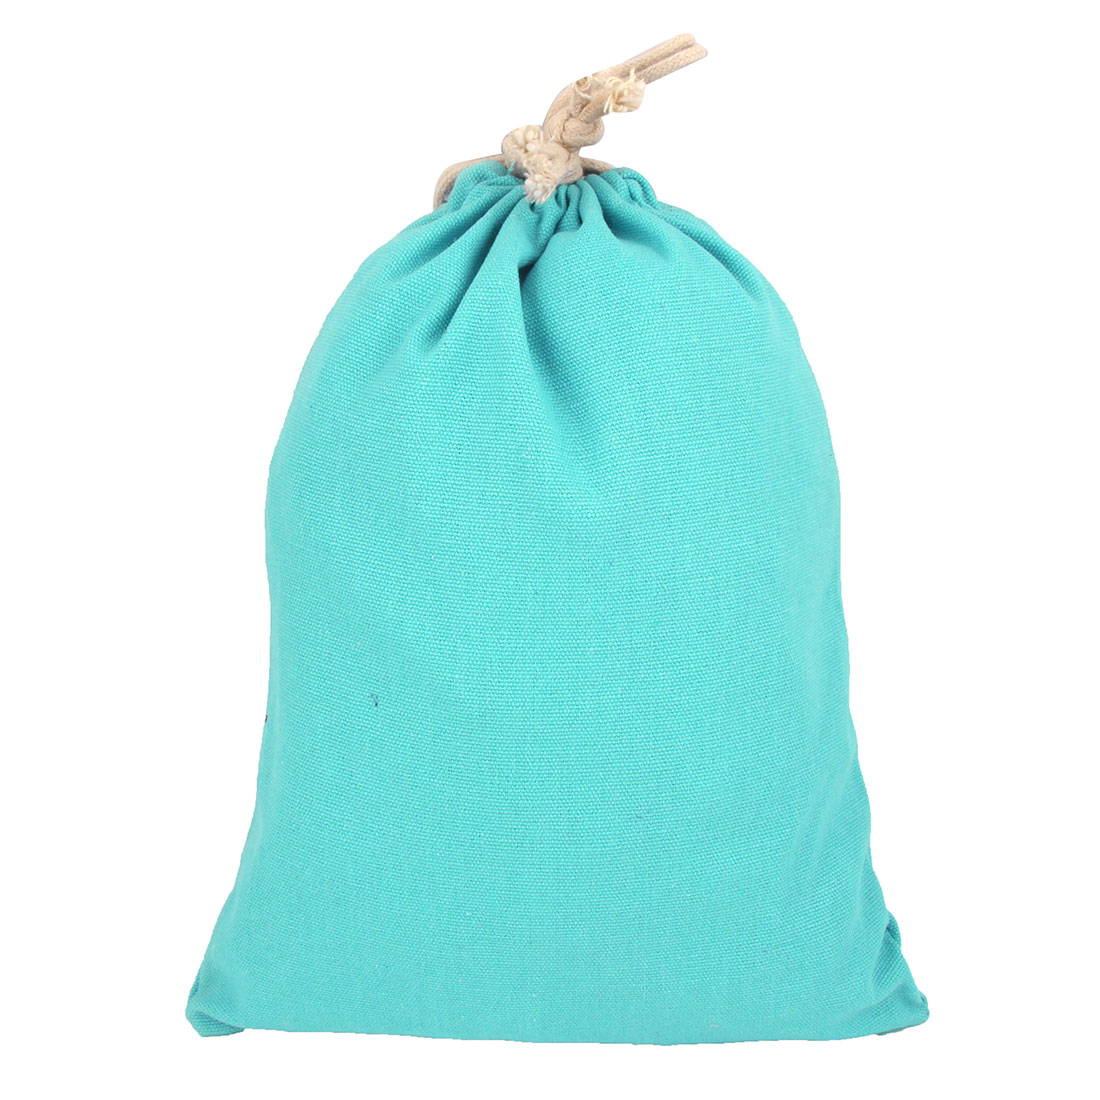 Home Travelling Canvas Draw Pouch Storage Packing Gift Toe Bag Cyan